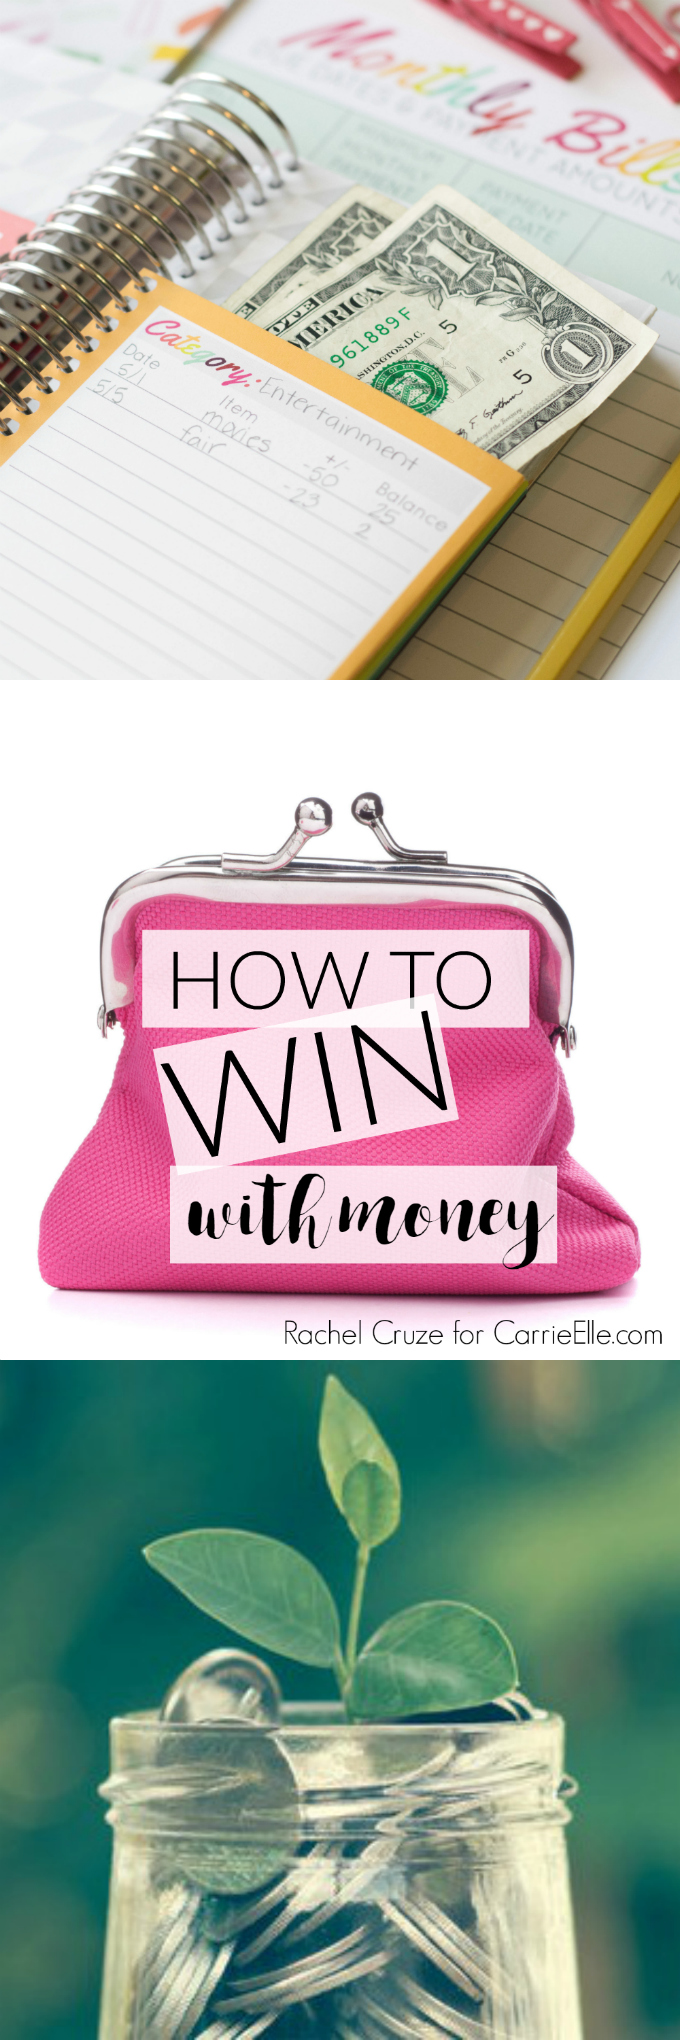 Rachel Cruze Win with Money